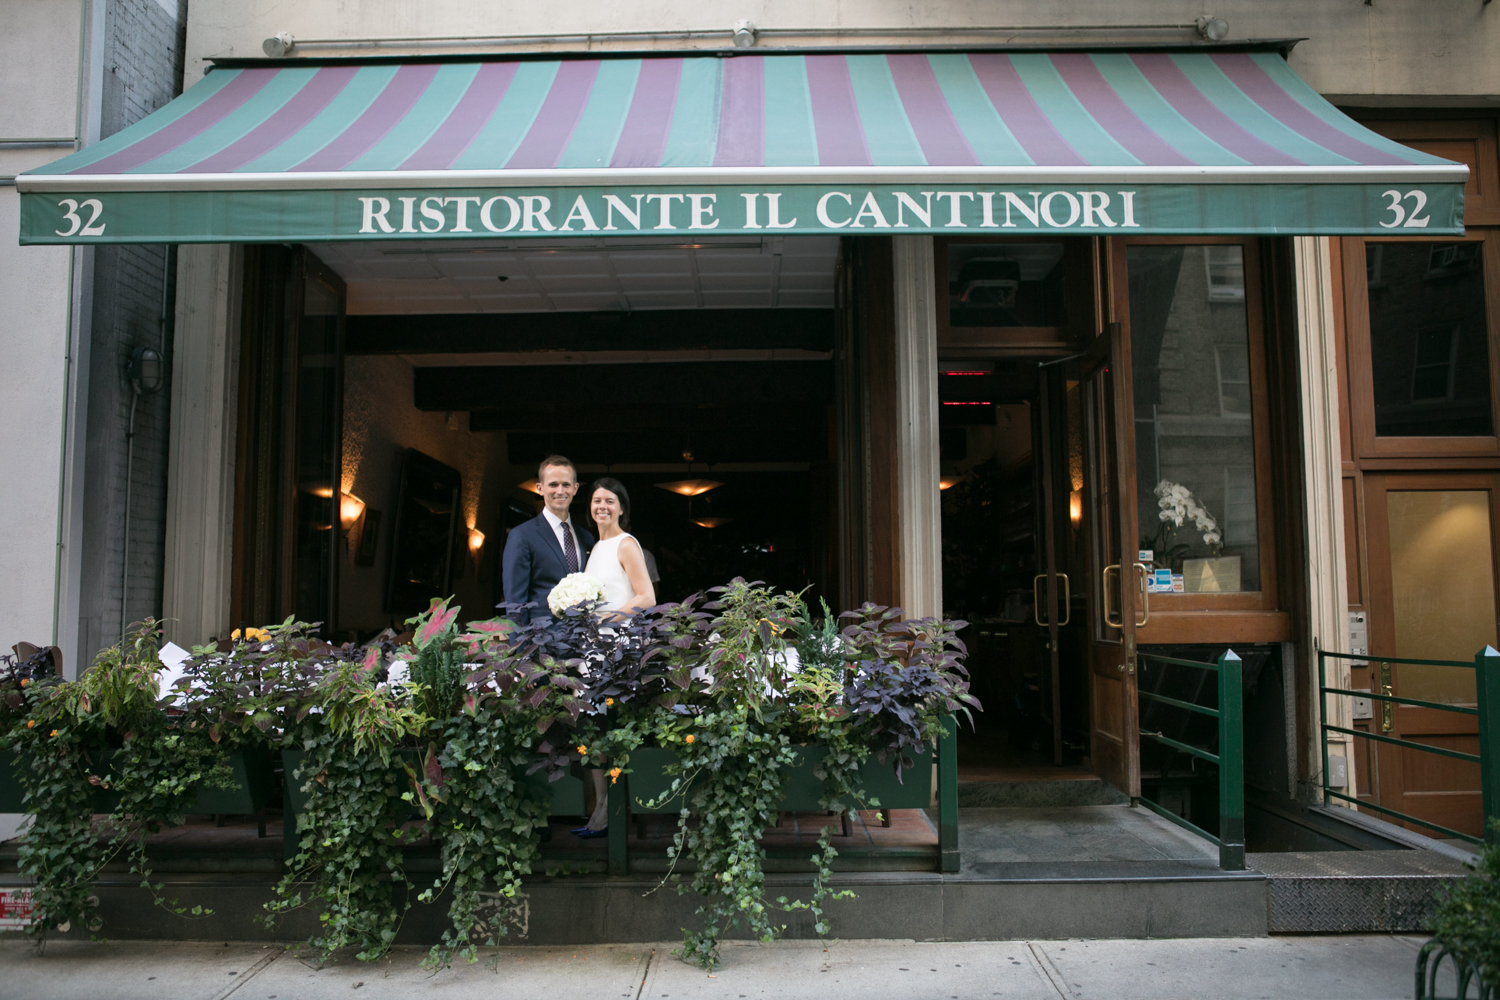 Portrait of newlyweds in front of Ristorante il Cantinori in Manhattan.